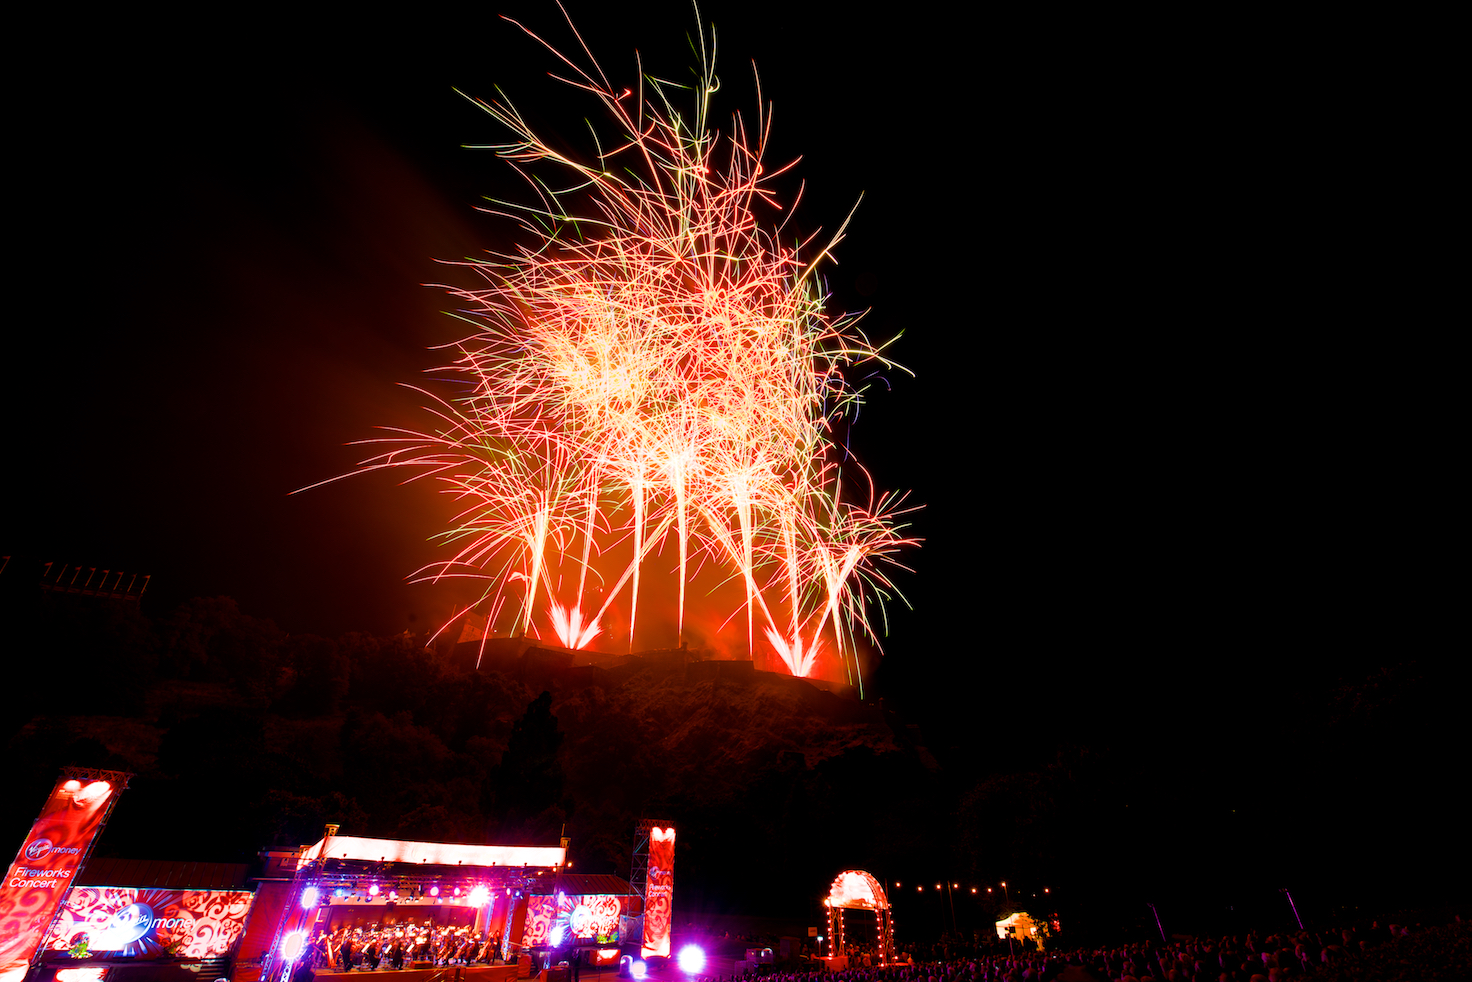 virgin-money-fireworks-concert-edinburgh-castleedinburgh-international-festival-edinburgh-castle-29th-august-2016-7